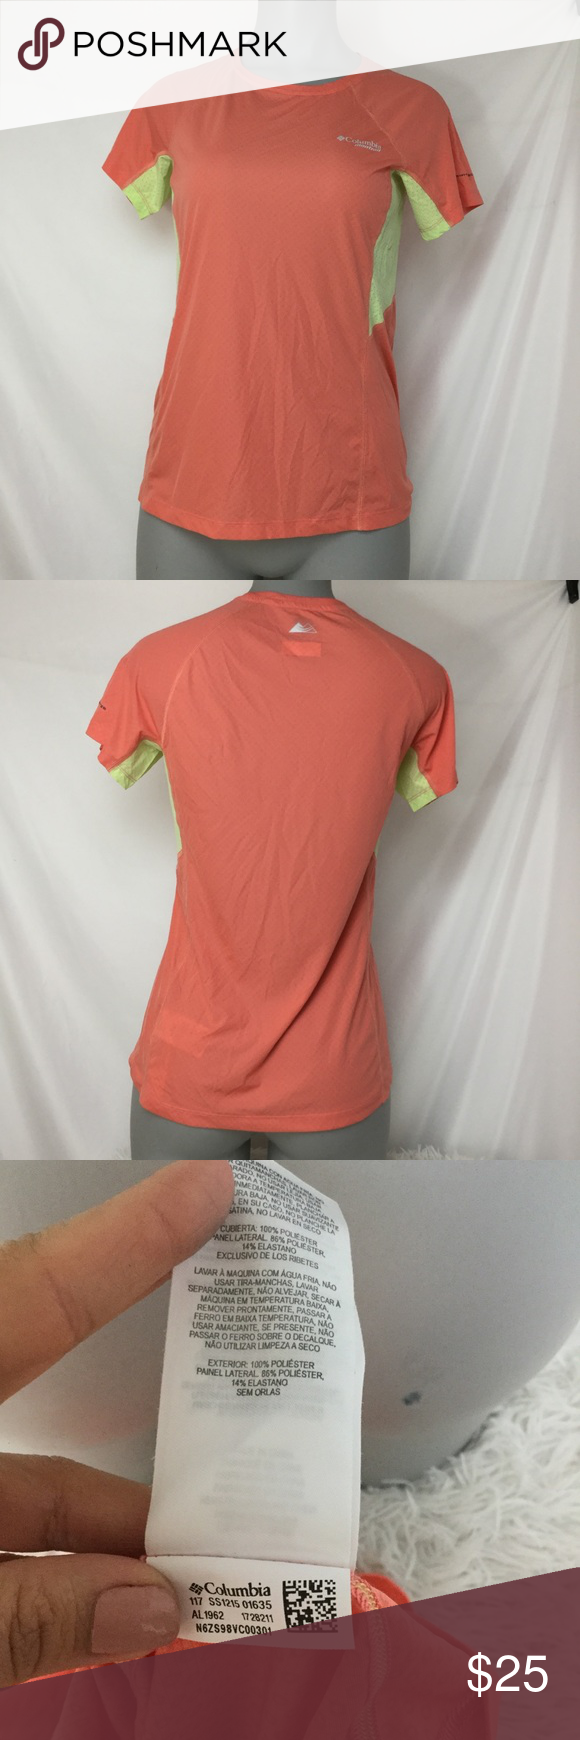 17435c28637 Columbia Titanium Tee Preowned in great condition ◻️Color- Orange/ Yellow ◻️Omni  freeze